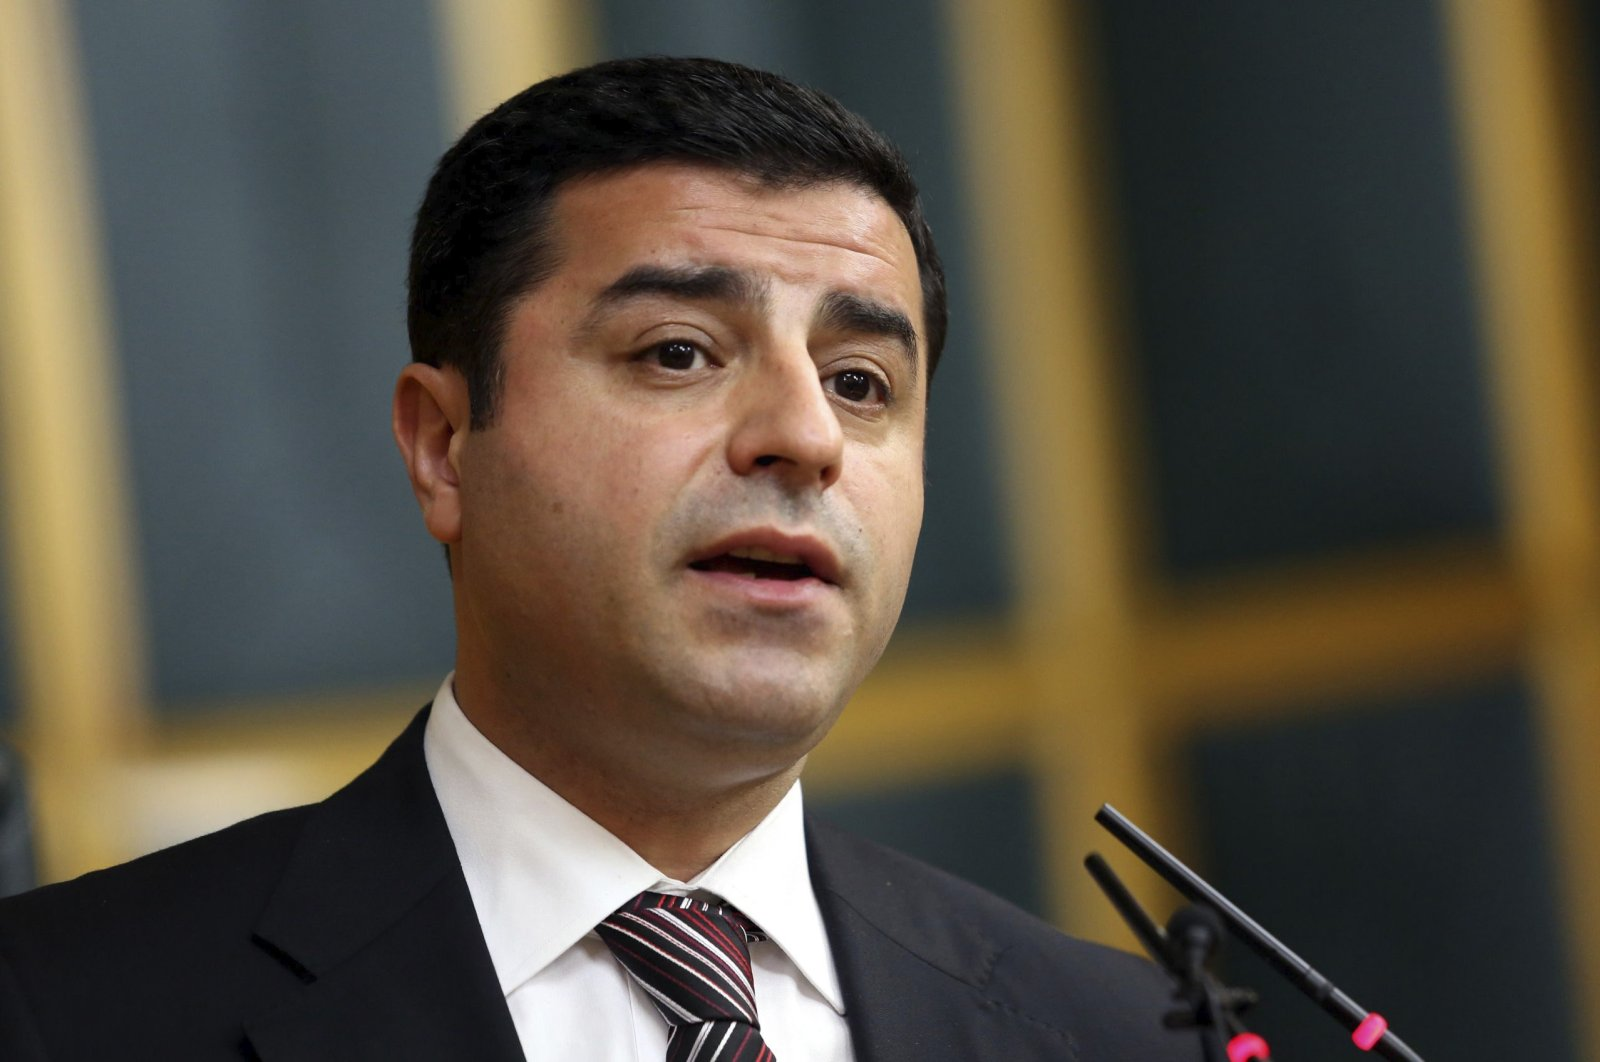 Former People's Democratic Party (HDP) co-Chair Selahattin Demirtaş.